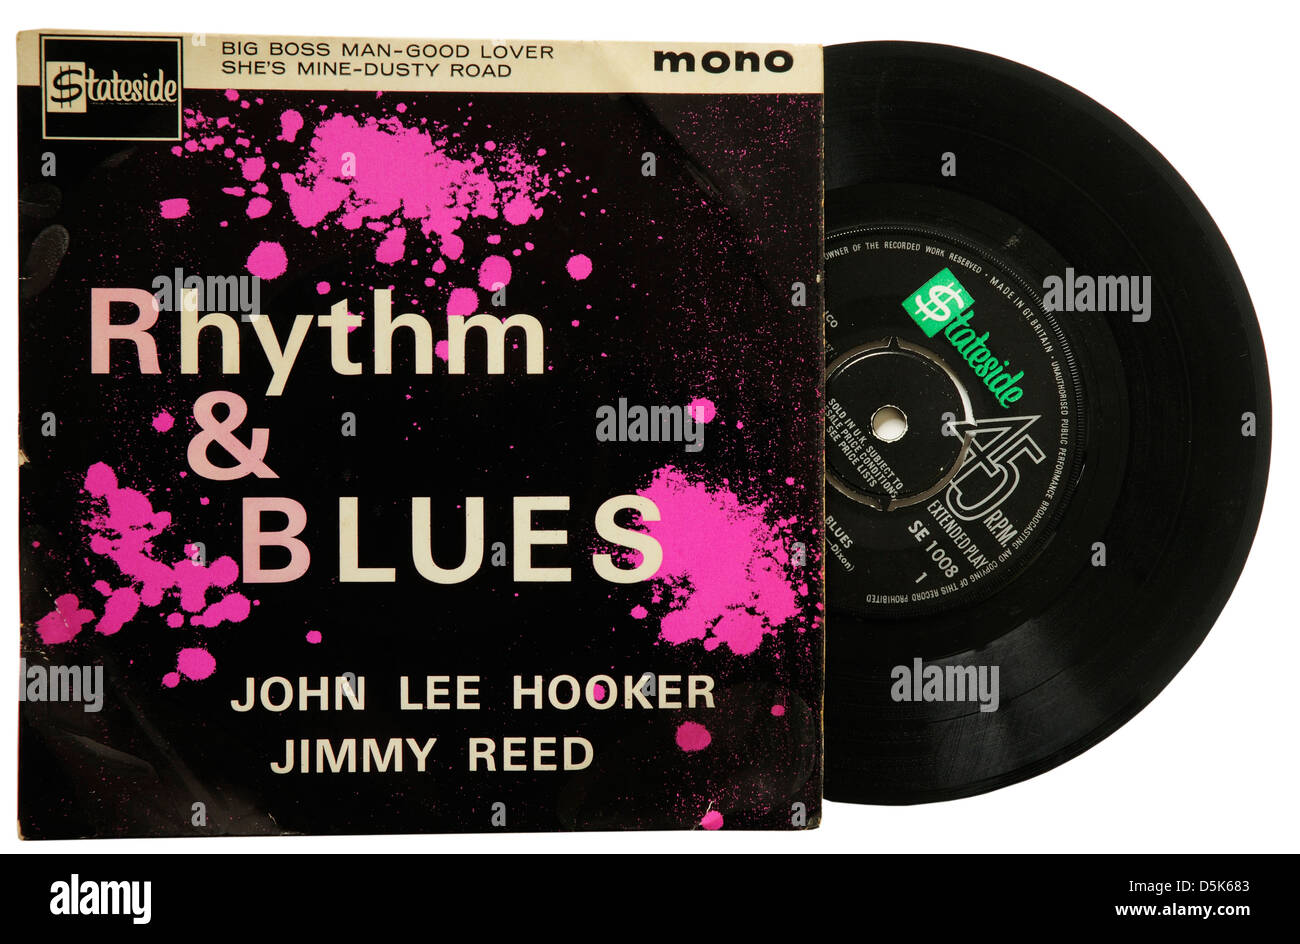 John Lee Hooker & Jimmy Reed Rhythm and Blues EP Immagini Stock